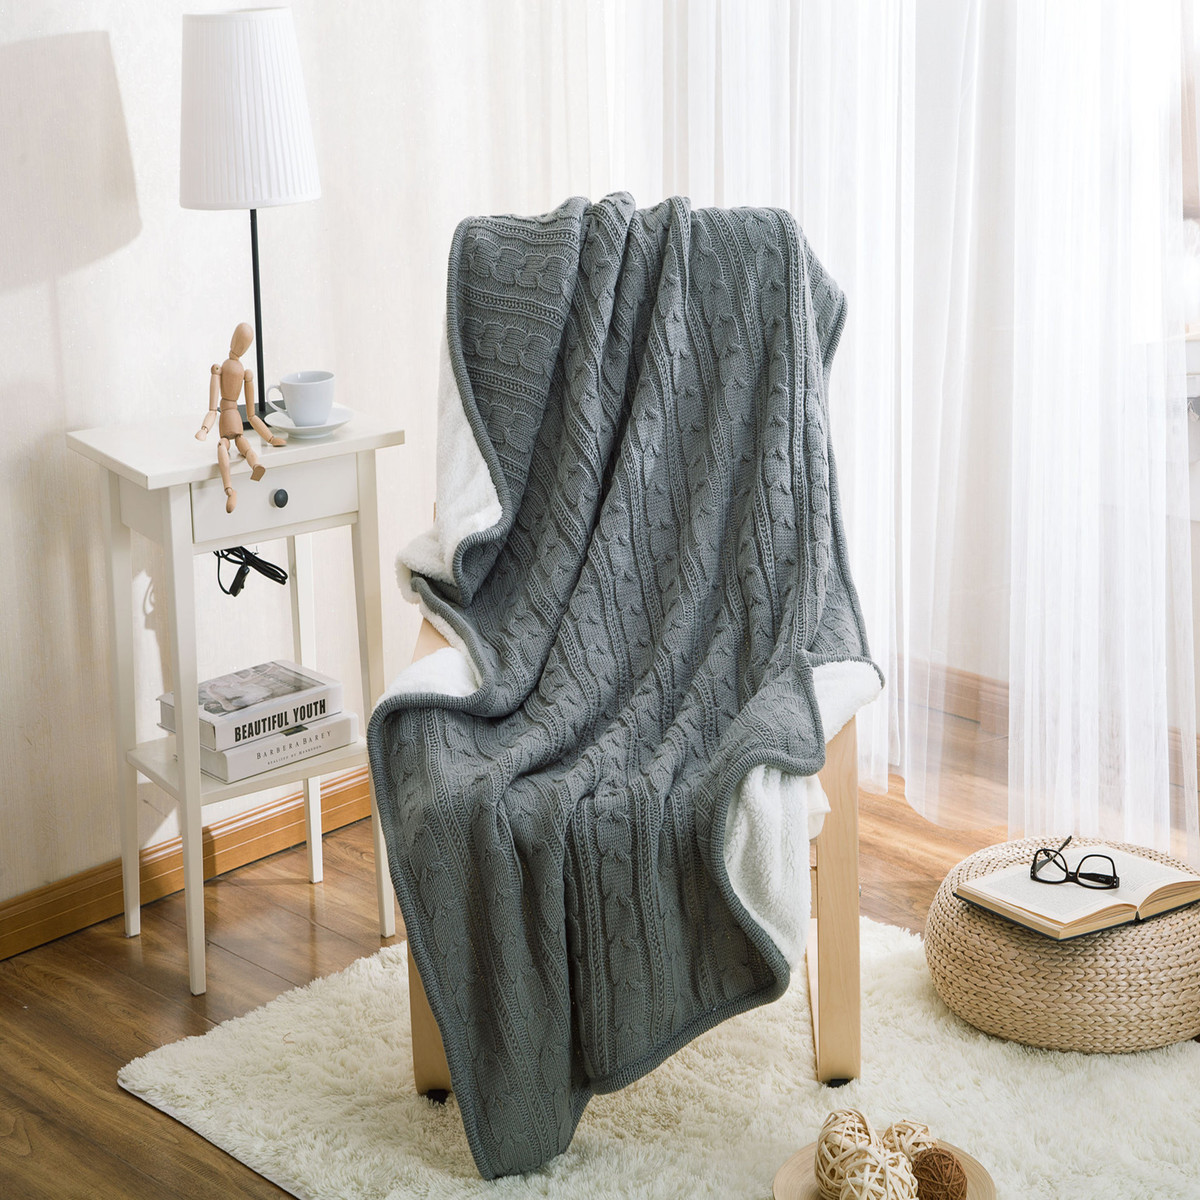 Solid Winter Warm Soft Sheep Velvet Cashmere Wool Fleece Blanket Double Layer Adult Plaid Fluffy Knitted Cotton Sofa Bed ThrowSolid Winter Warm Soft Sheep Velvet Cashmere Wool Fleece Blanket Double Layer Adult Plaid Fluffy Knitted Cotton Sofa Bed Throw